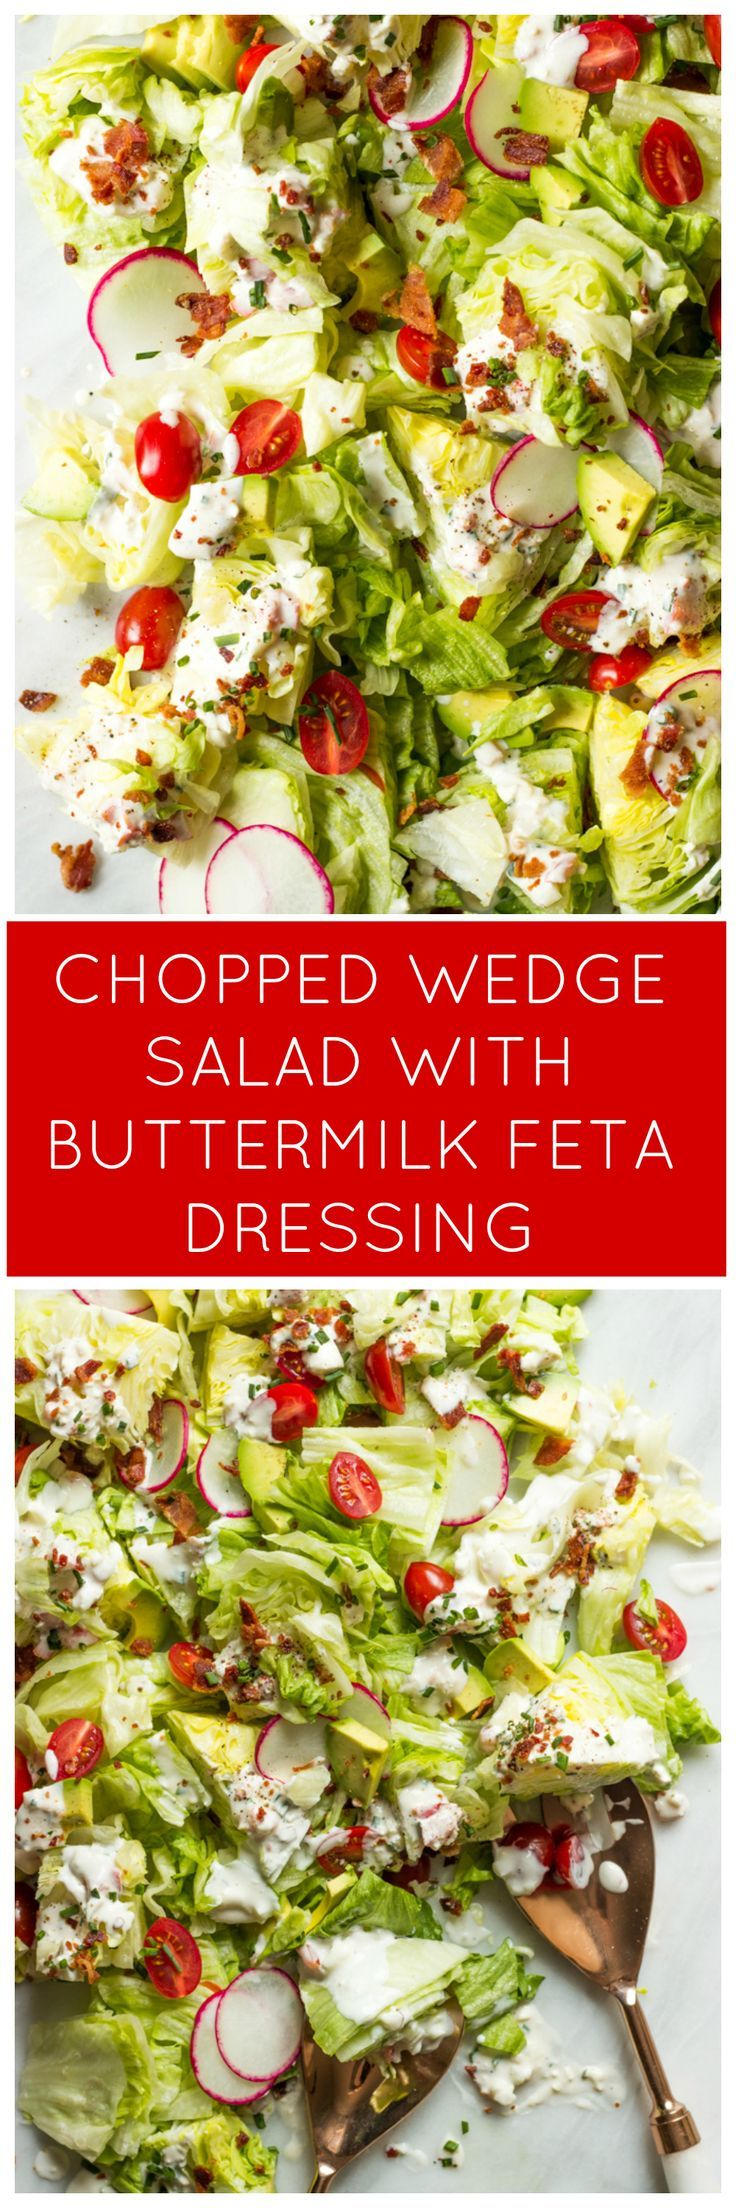 Chopped Wedge Salad With Buttermilk Feta Dressing Easy Chopped Wedge Salad With The Most Delicious Dressing Ever Littlebr Wedge Salad Salad Soup And Salad